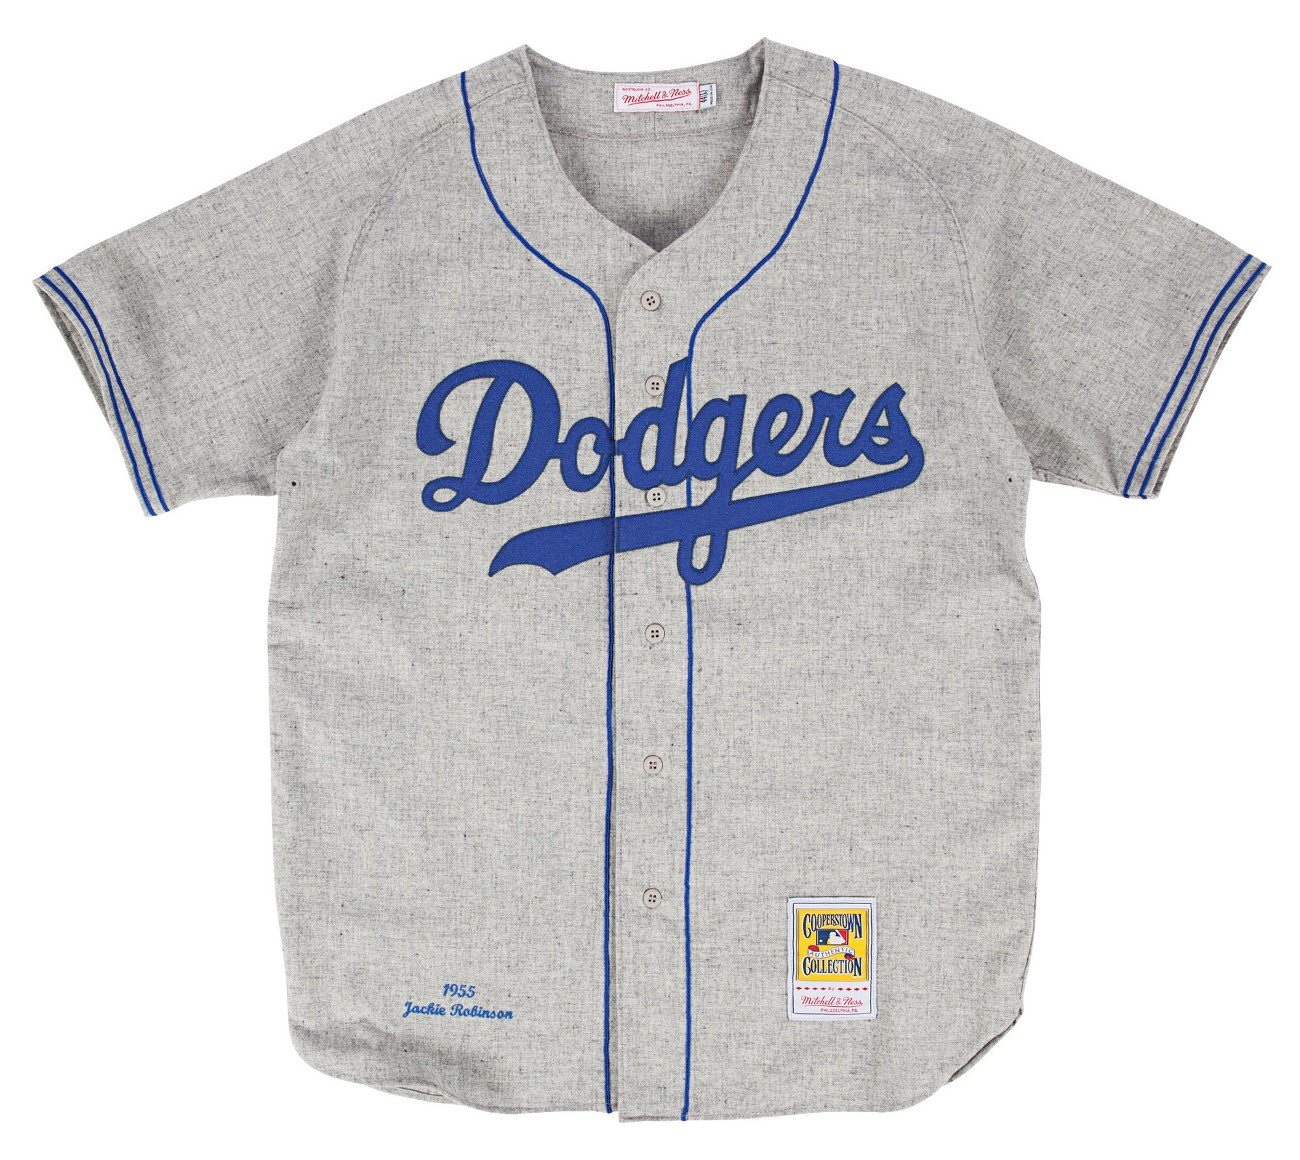 detailed look 6971f 83108 closeout brooklyn dodgers authentic 1955 jackie robinson ...